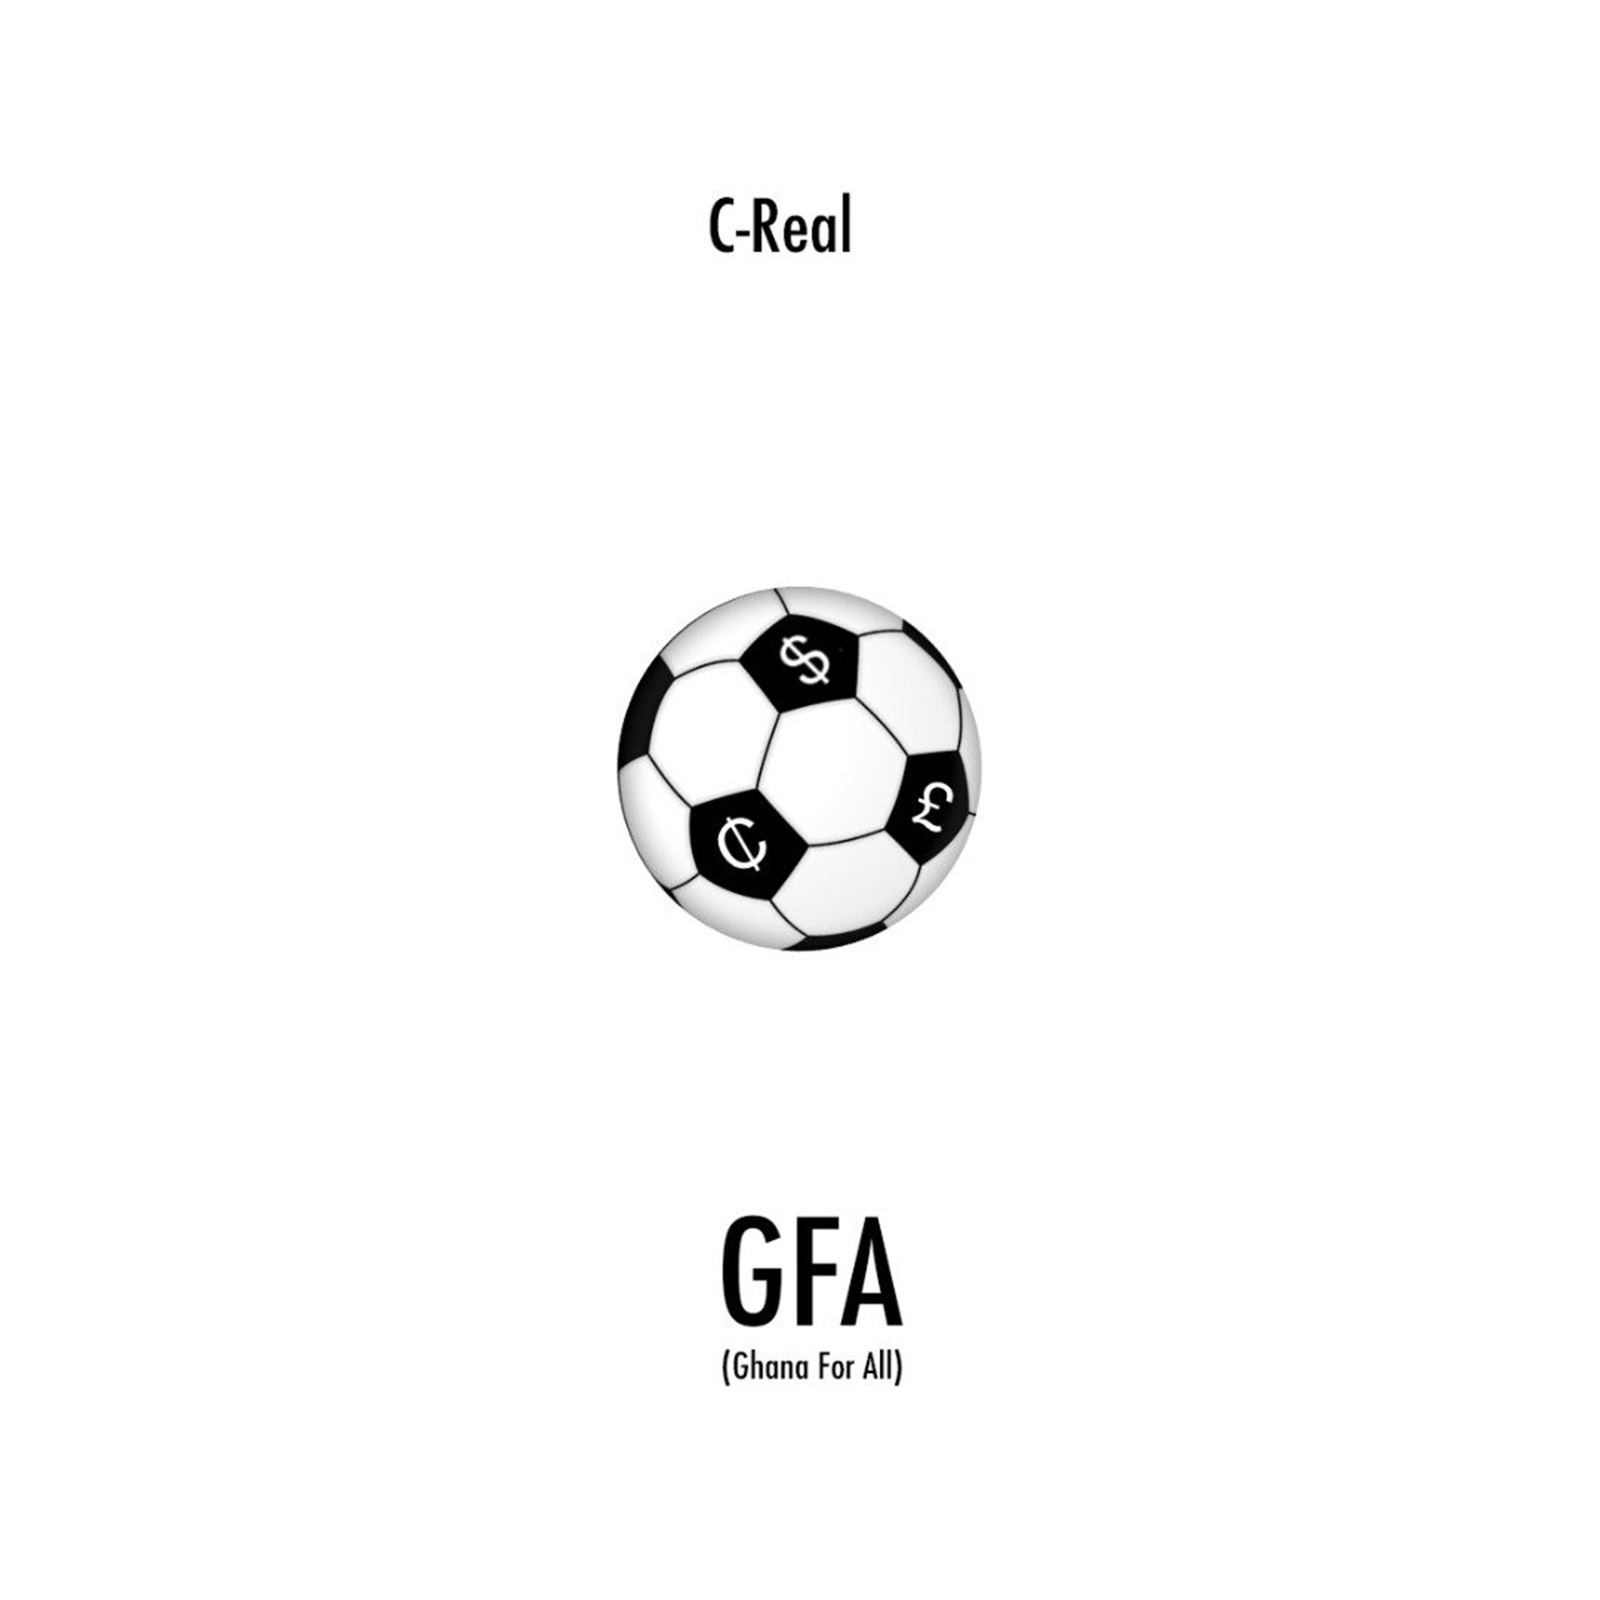 GFA (Ghana For All) by C-Real